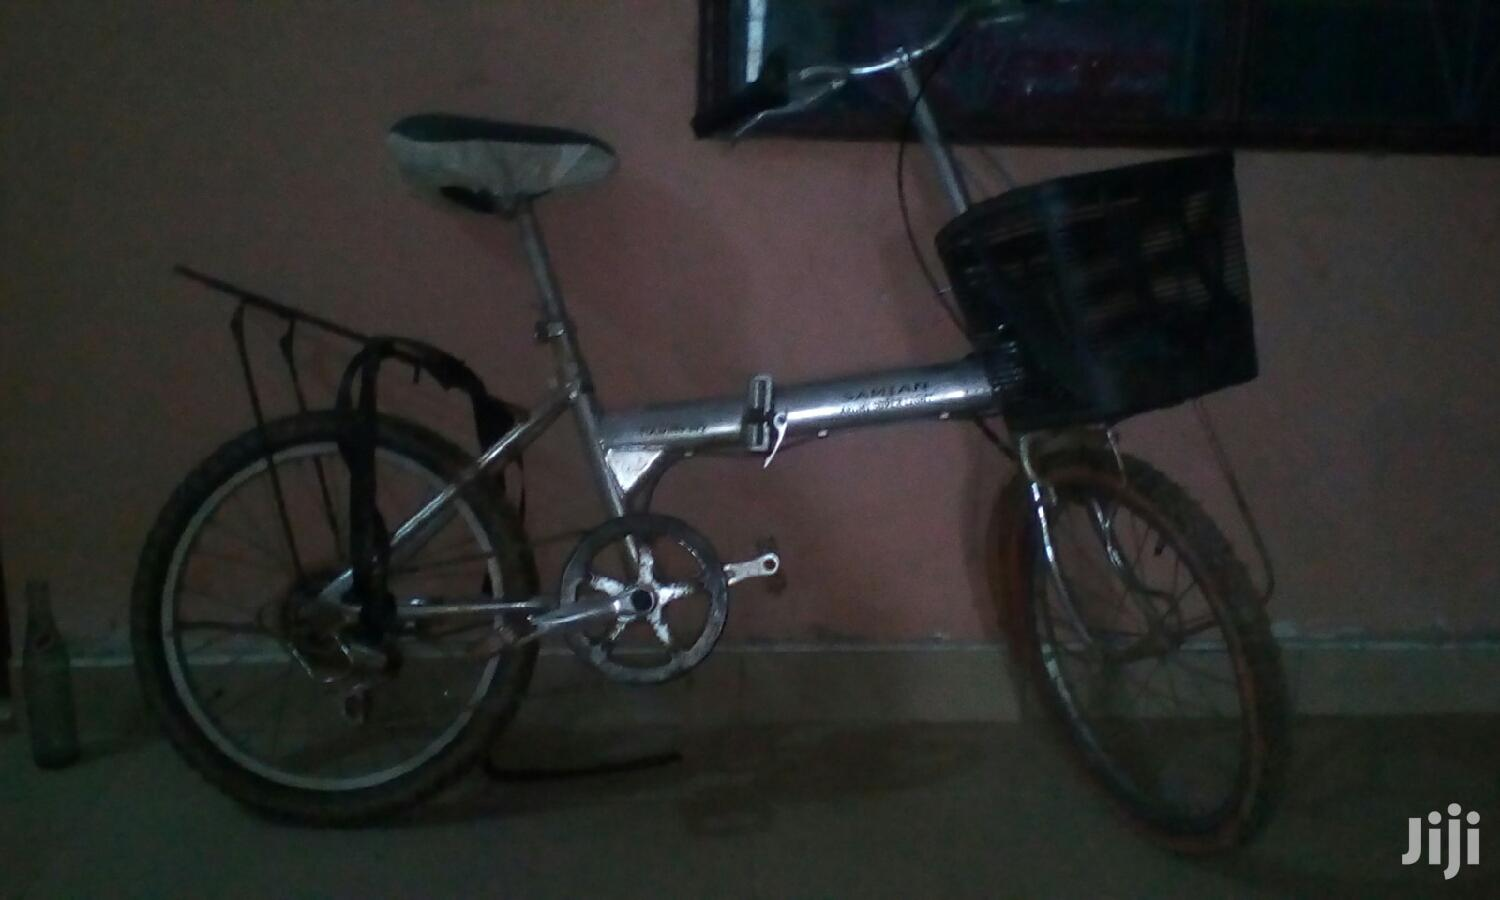 Archive: Used Bike For Sale At Cool Price No Fault Only A Broken Steer